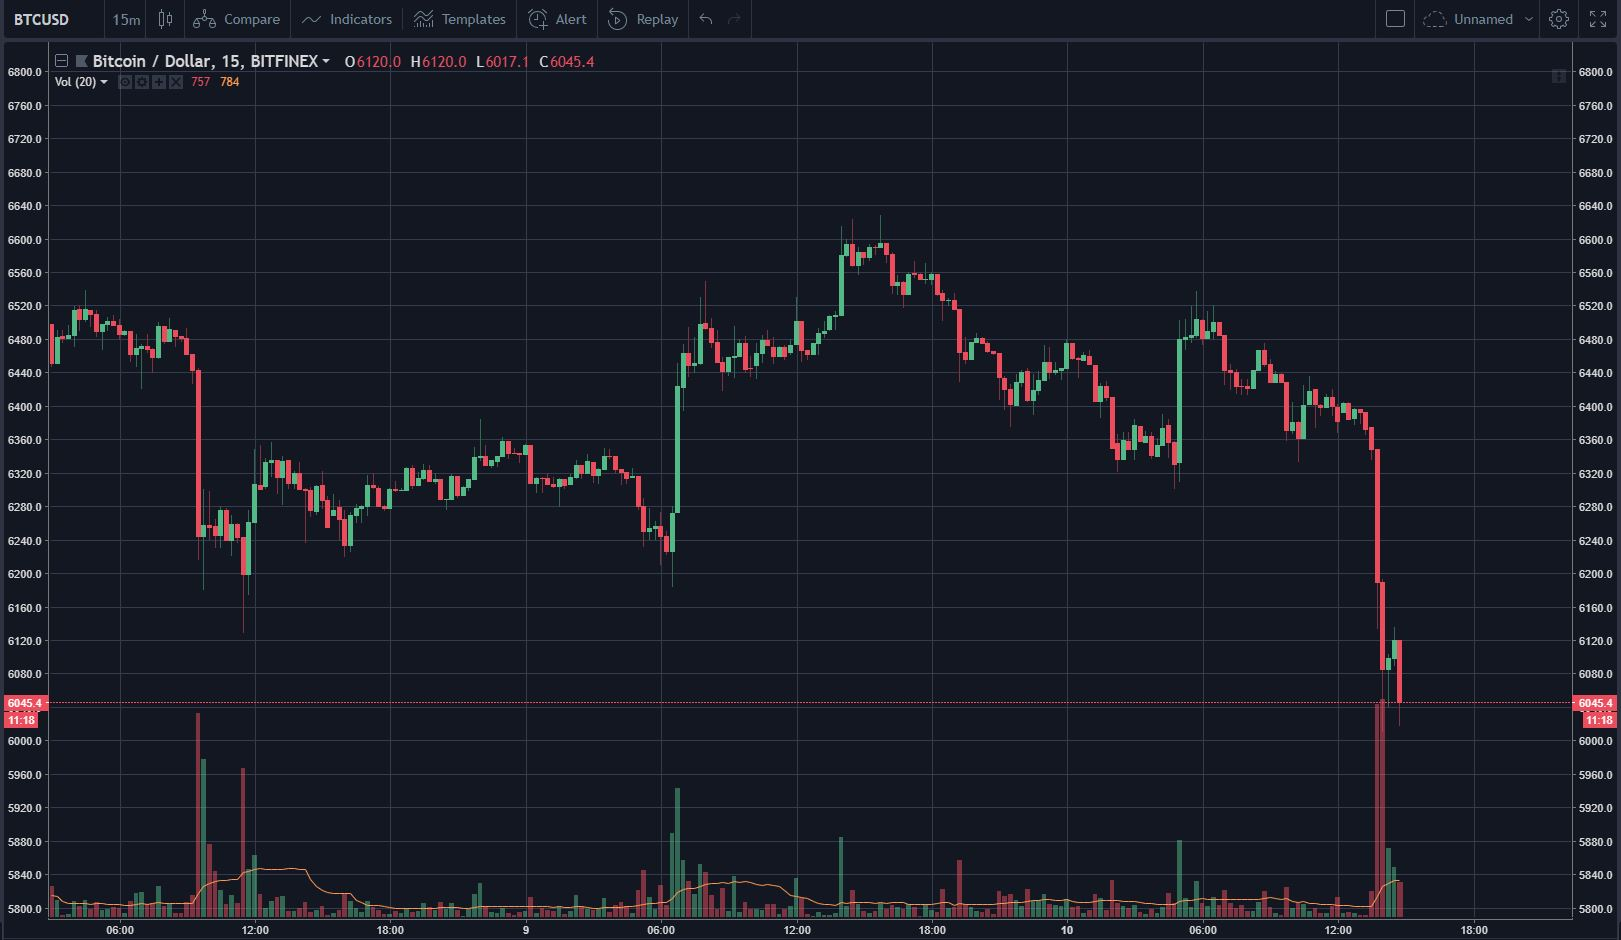 Bitcoin Falls to $6,050, Establishes New 1 Month Low 1